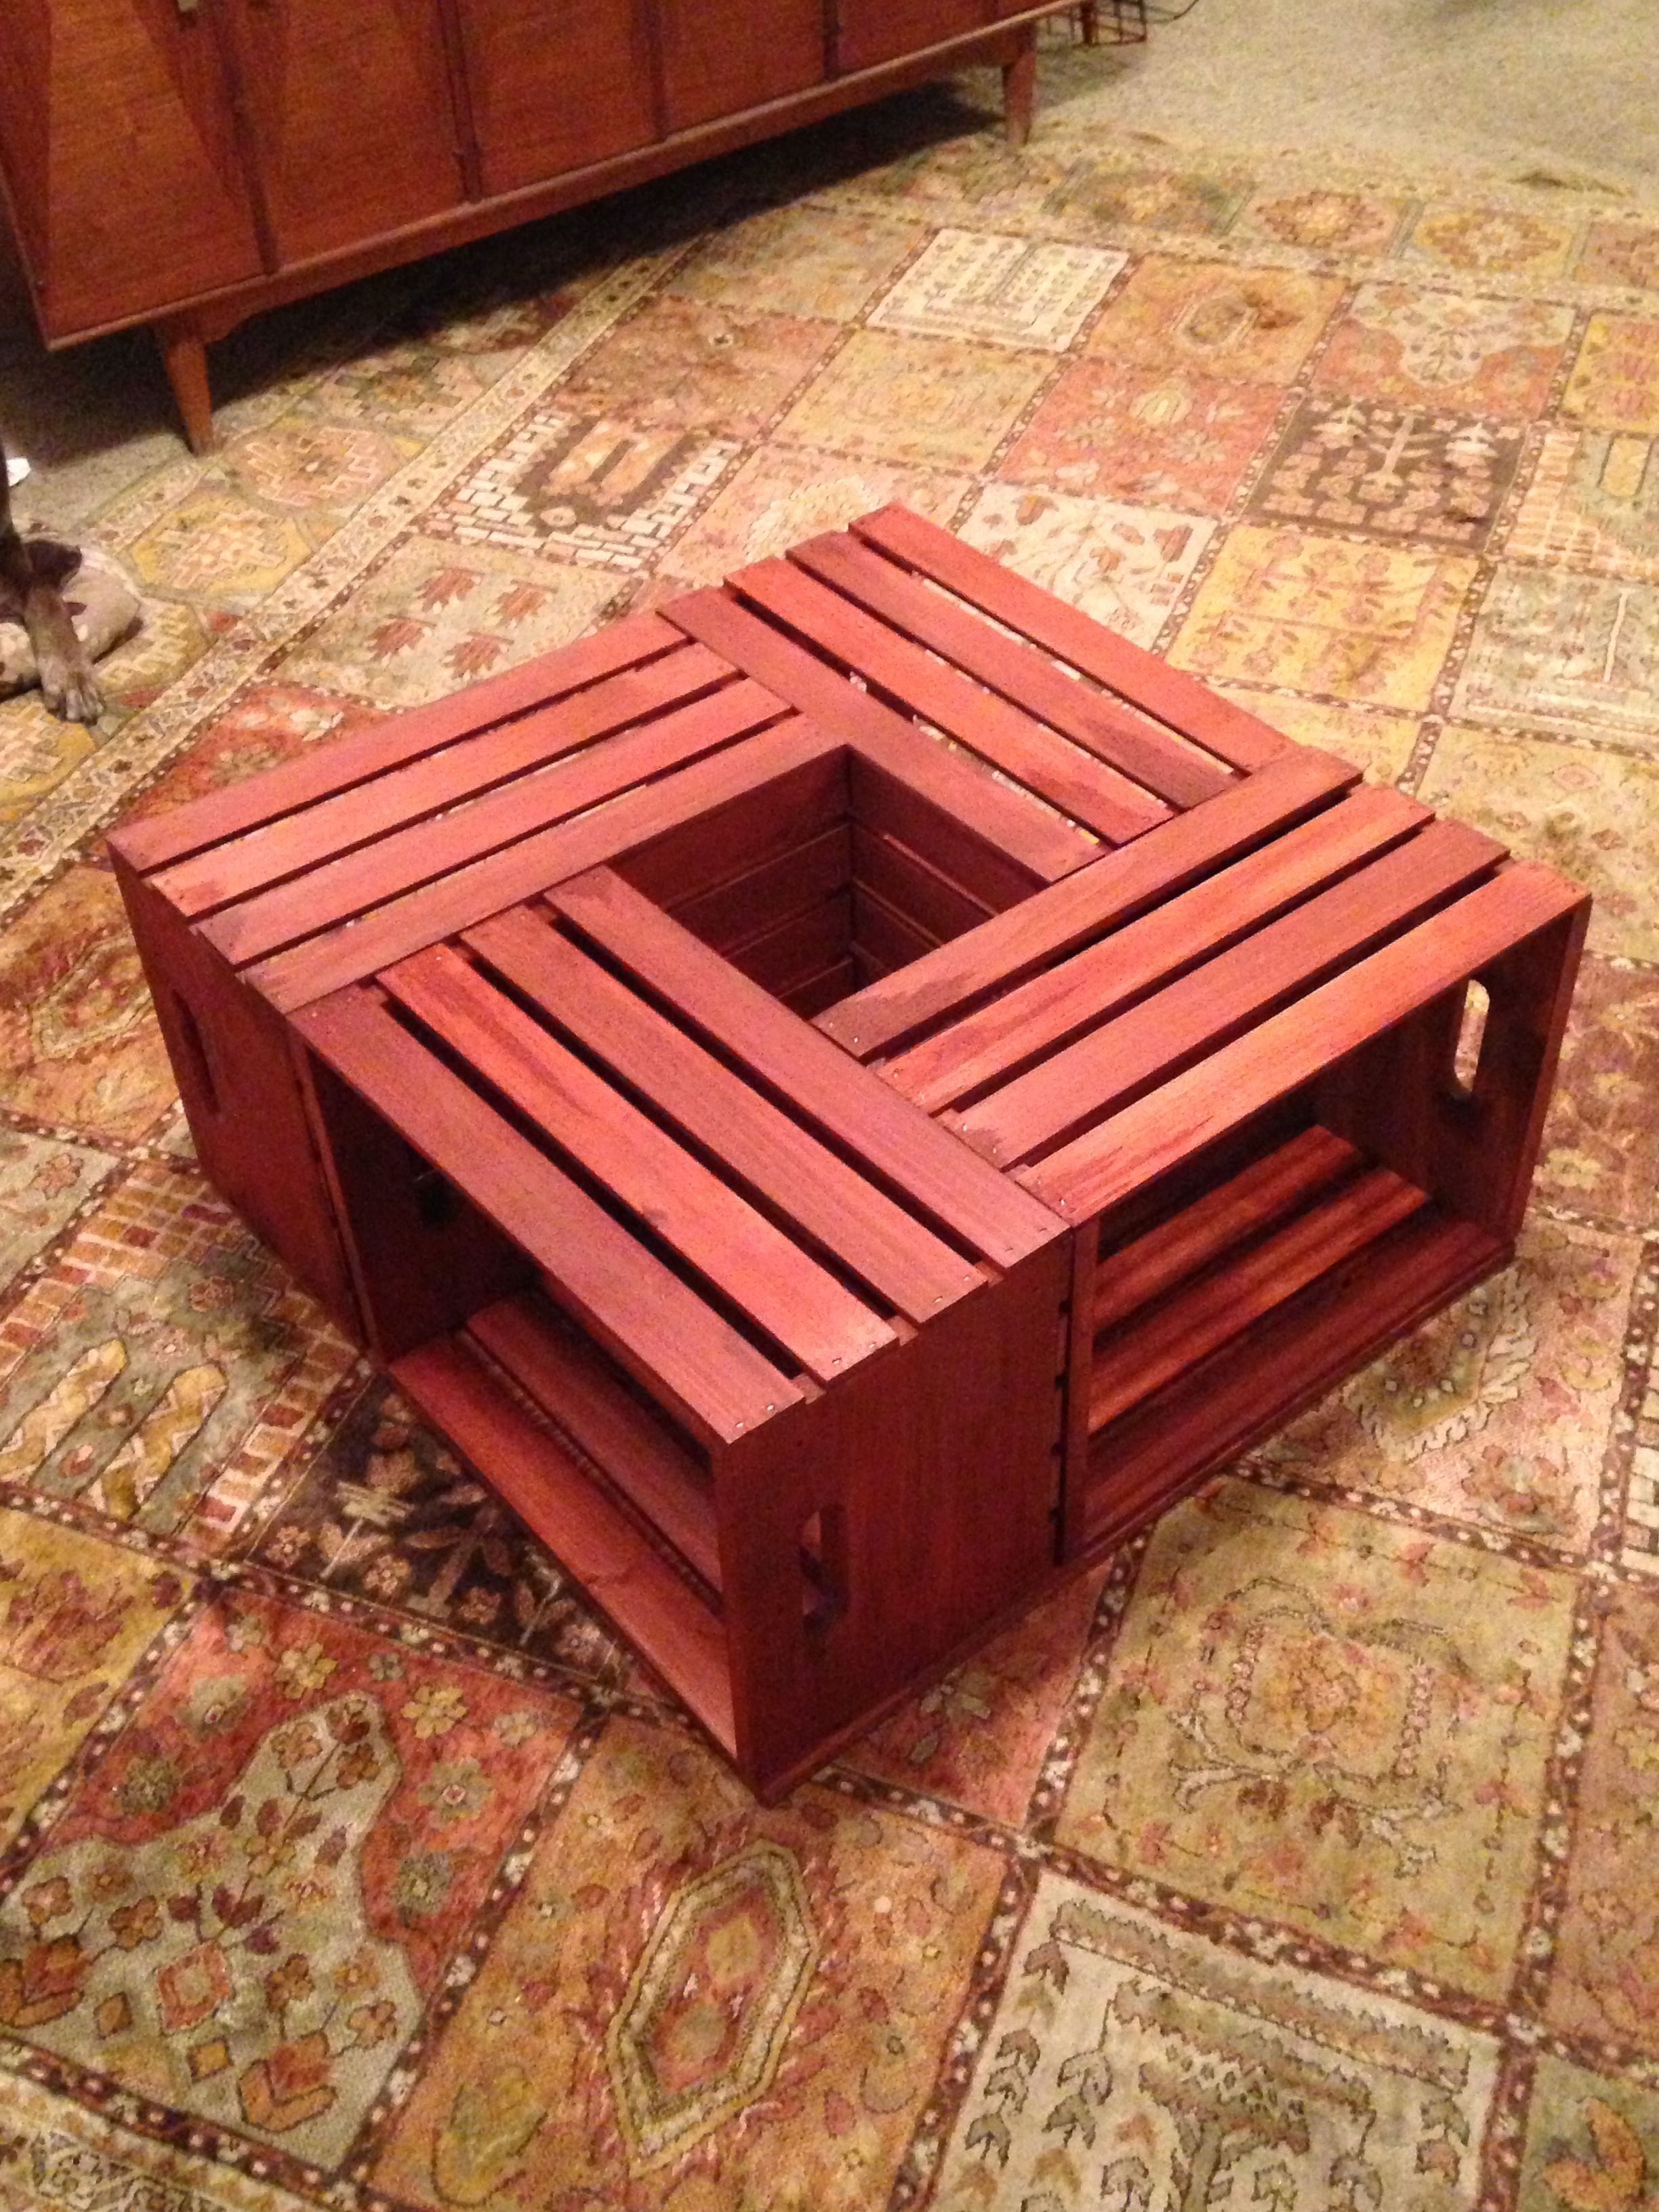 Diy Crate Coffee Table Potted Plant In The Middle Yaaaayyyy Diy Crate Coffee Table Crate Coffee Table Diy Coffee Table